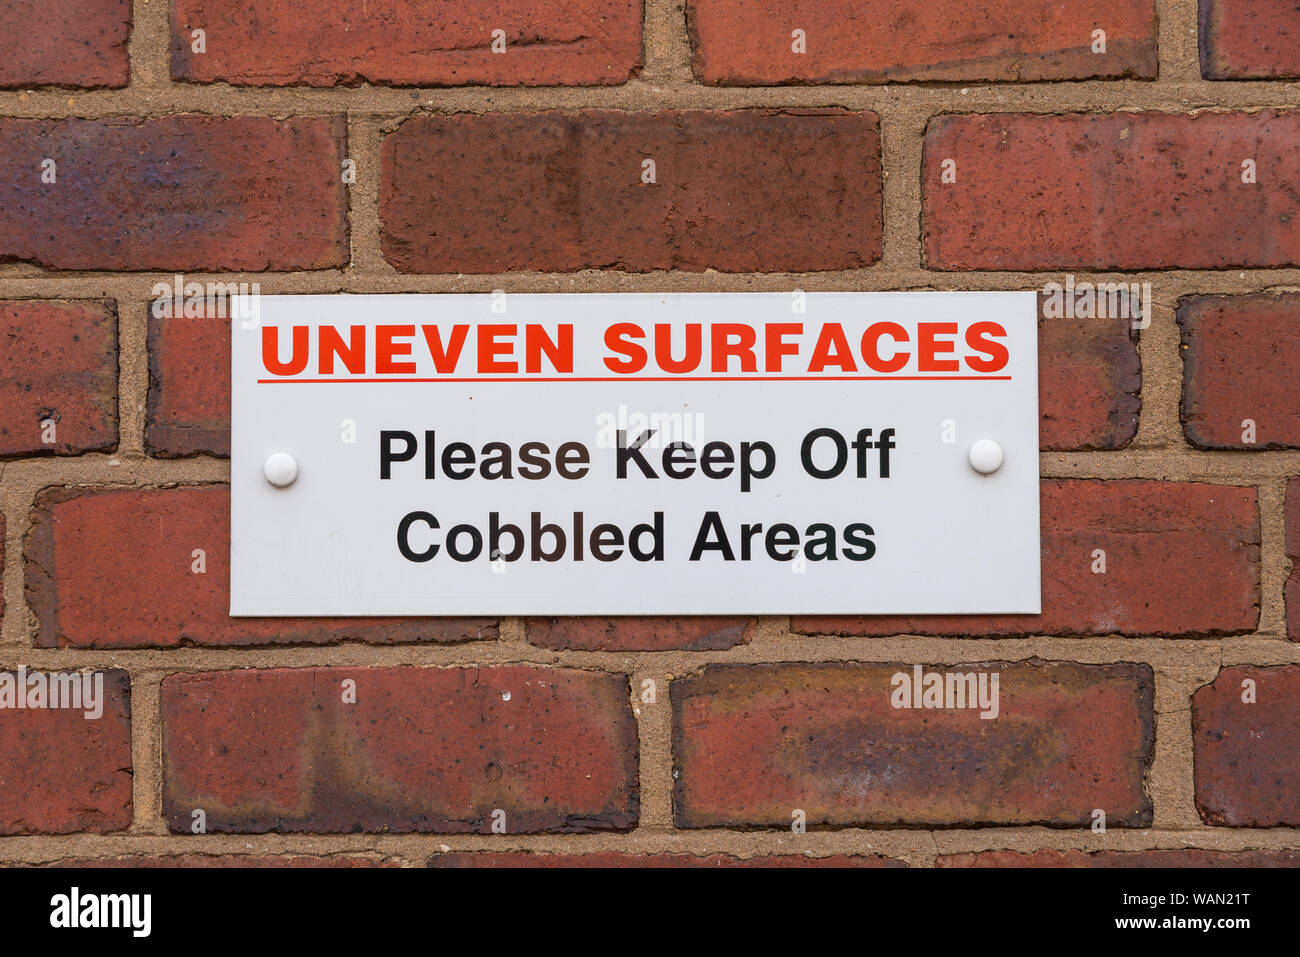 Sign saying uneven surfaces please keep off cobbled areas fixed to brick wall Stock Photo